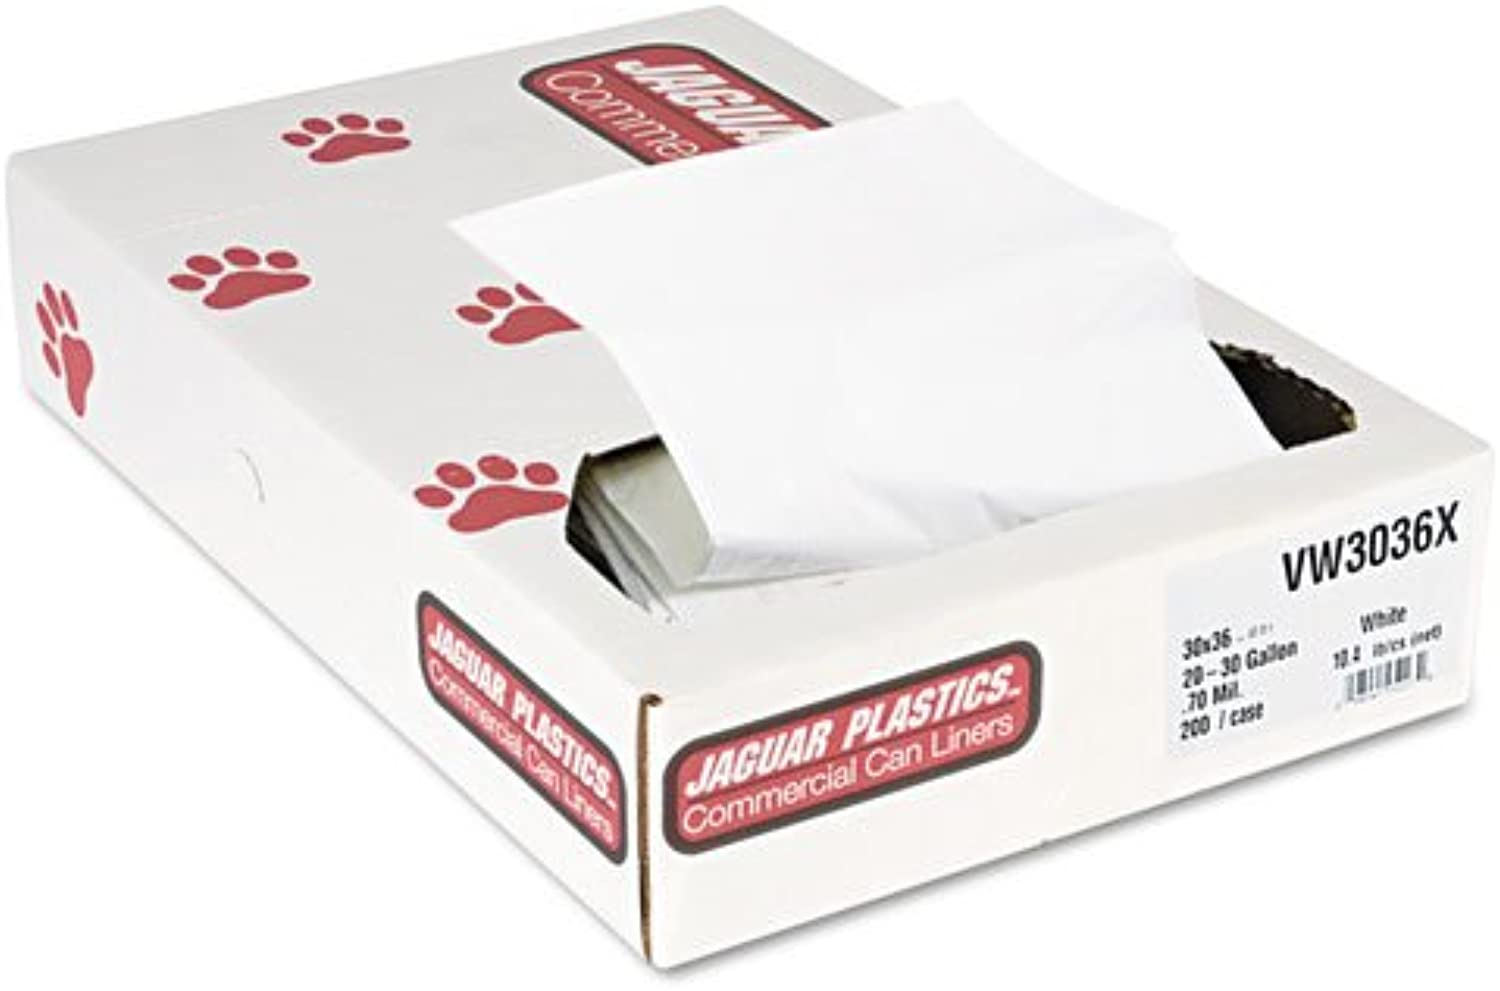 Jaguar Plastics Industrial Strength Commercial Can Liners, 30 gal, .7 mil, White - Includes 200 per case.